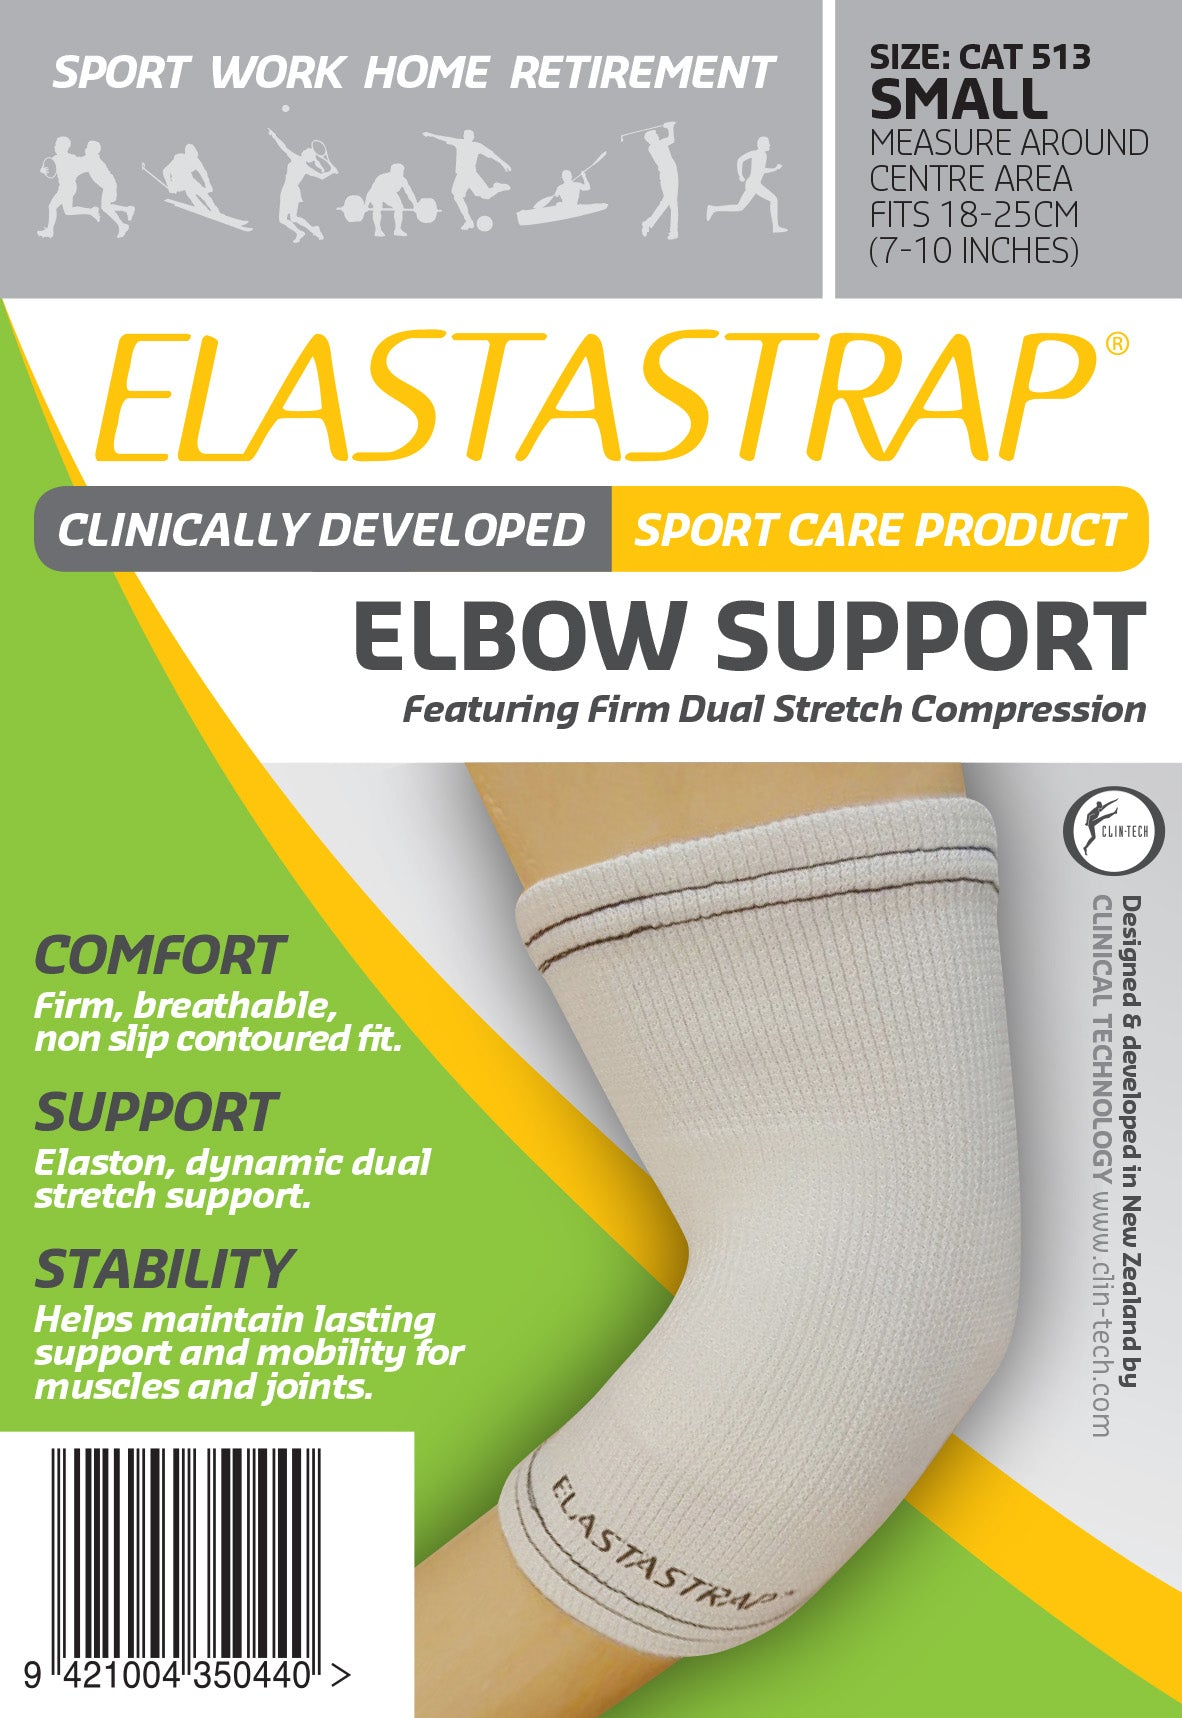 Elastastrap Compression Elbow Support